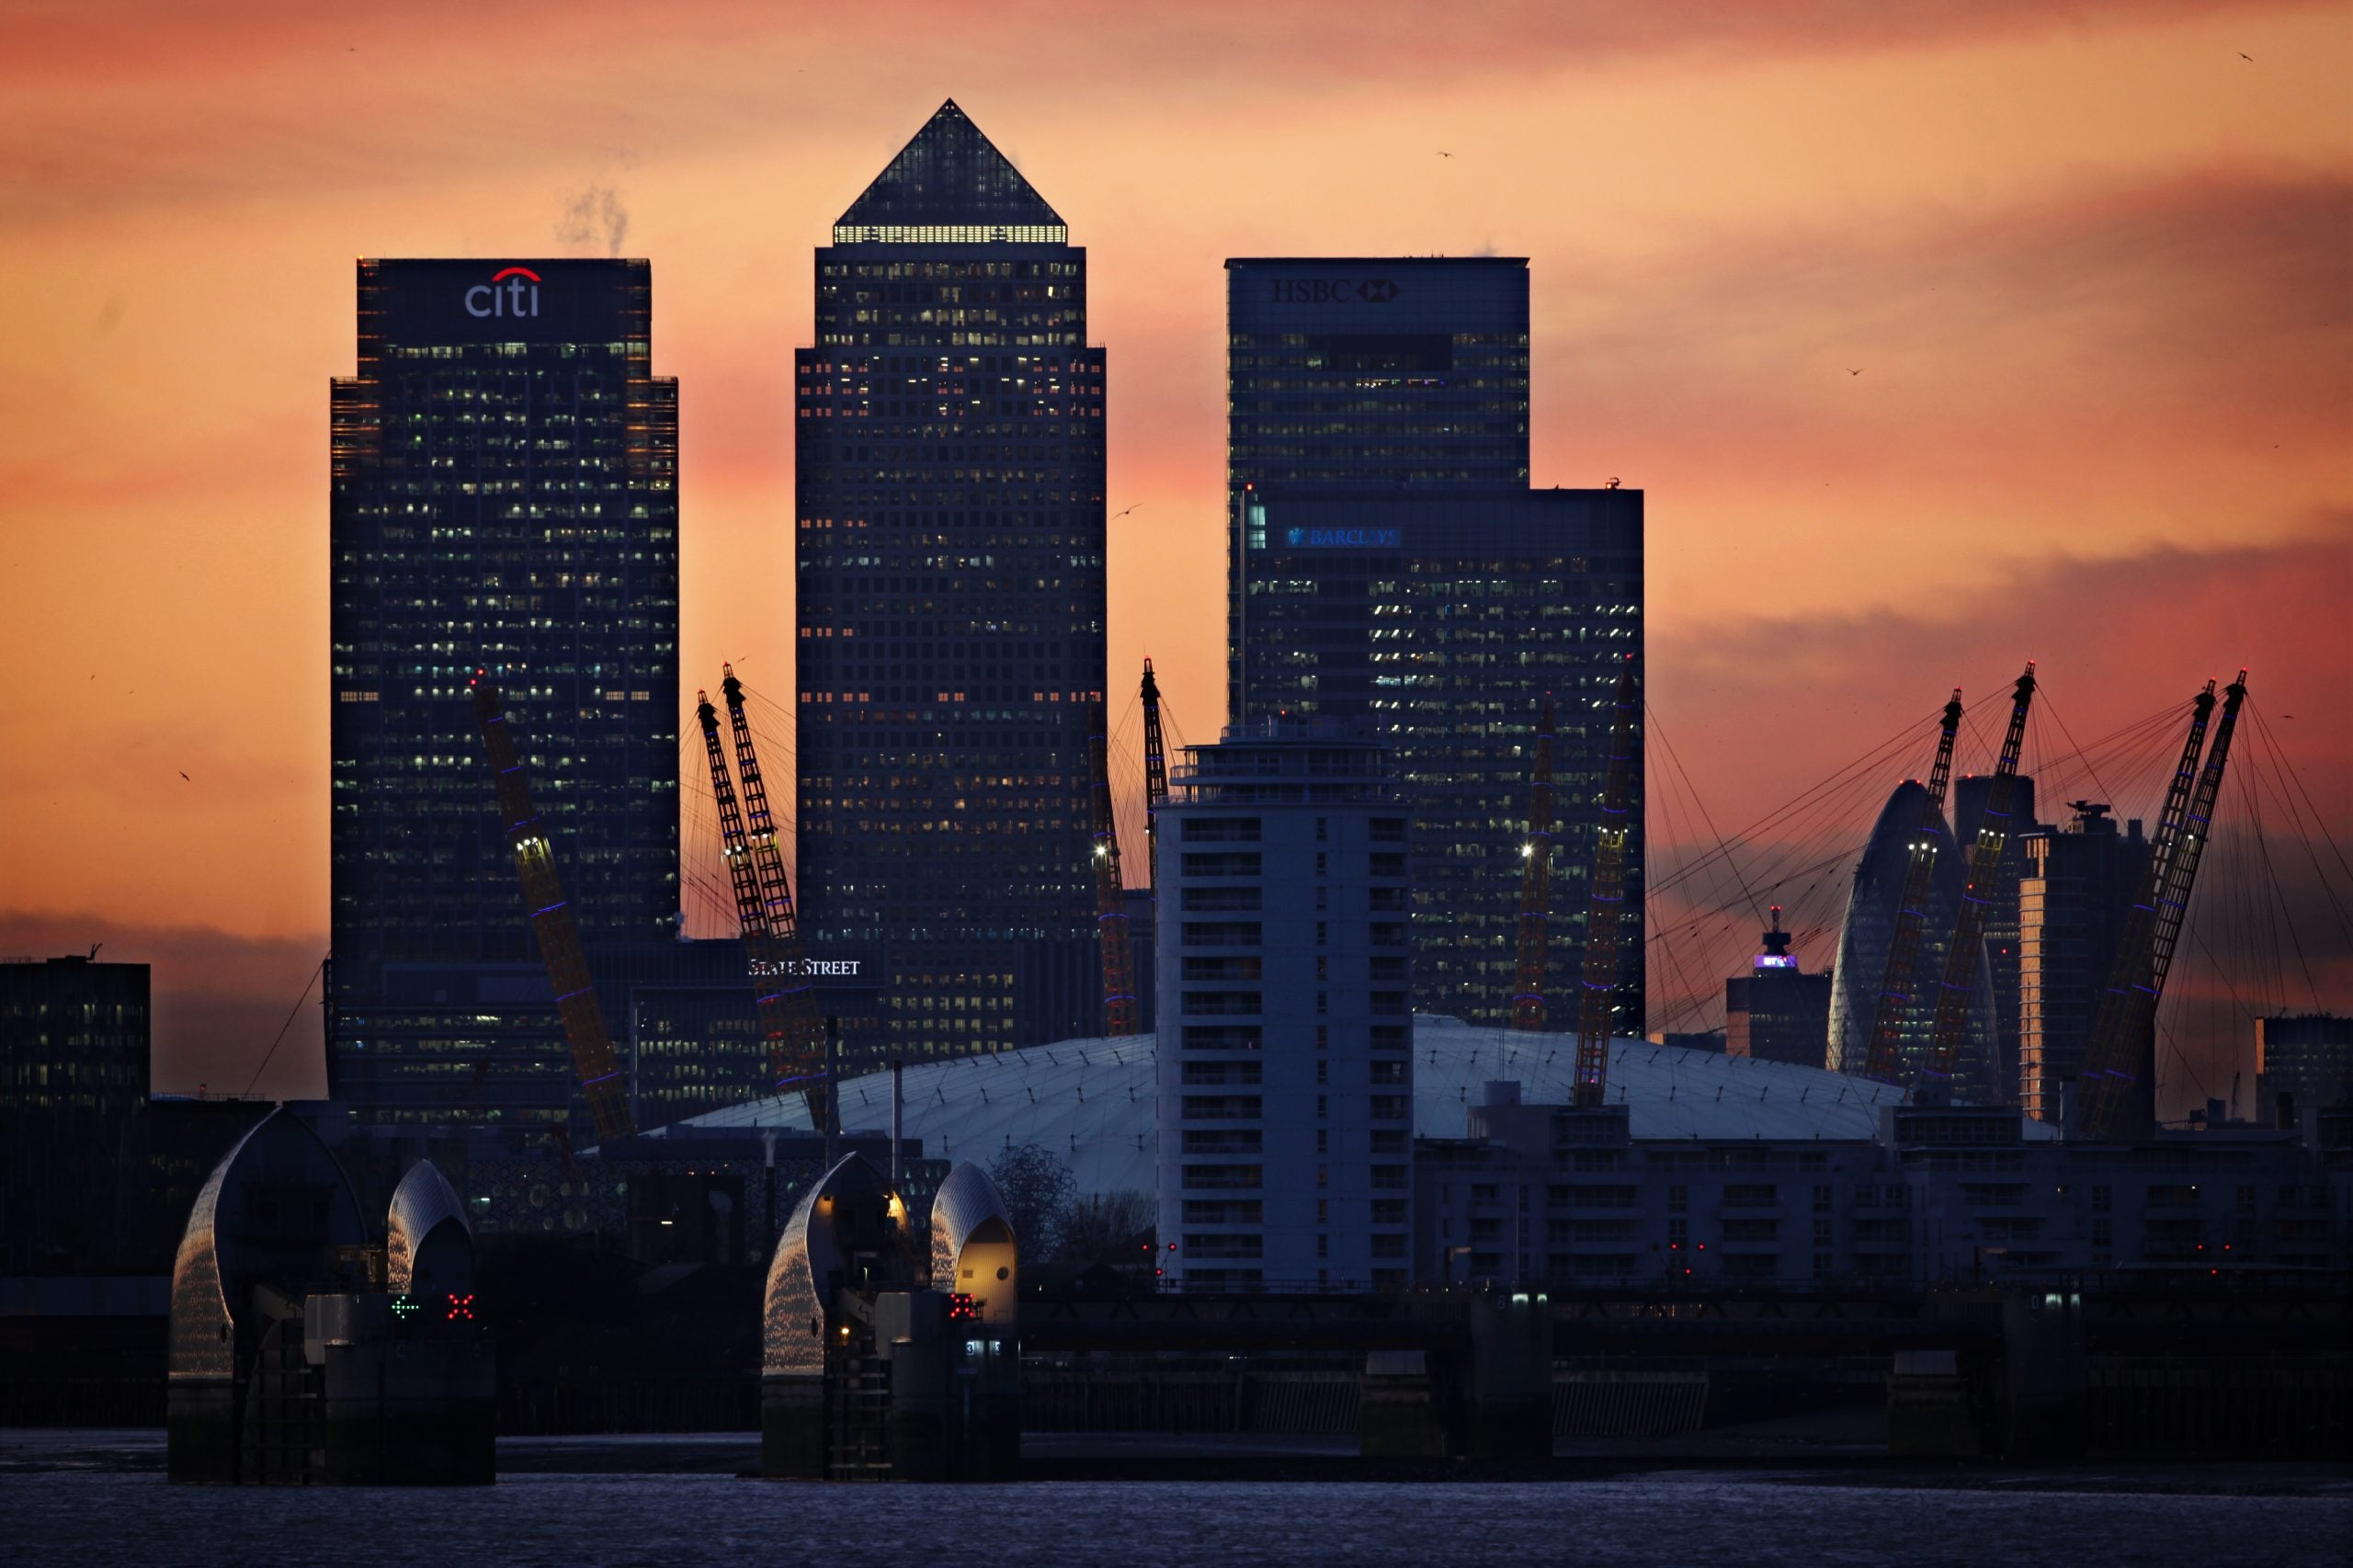 The City of London would be the ninth largest emitter of CO2 if it were a country